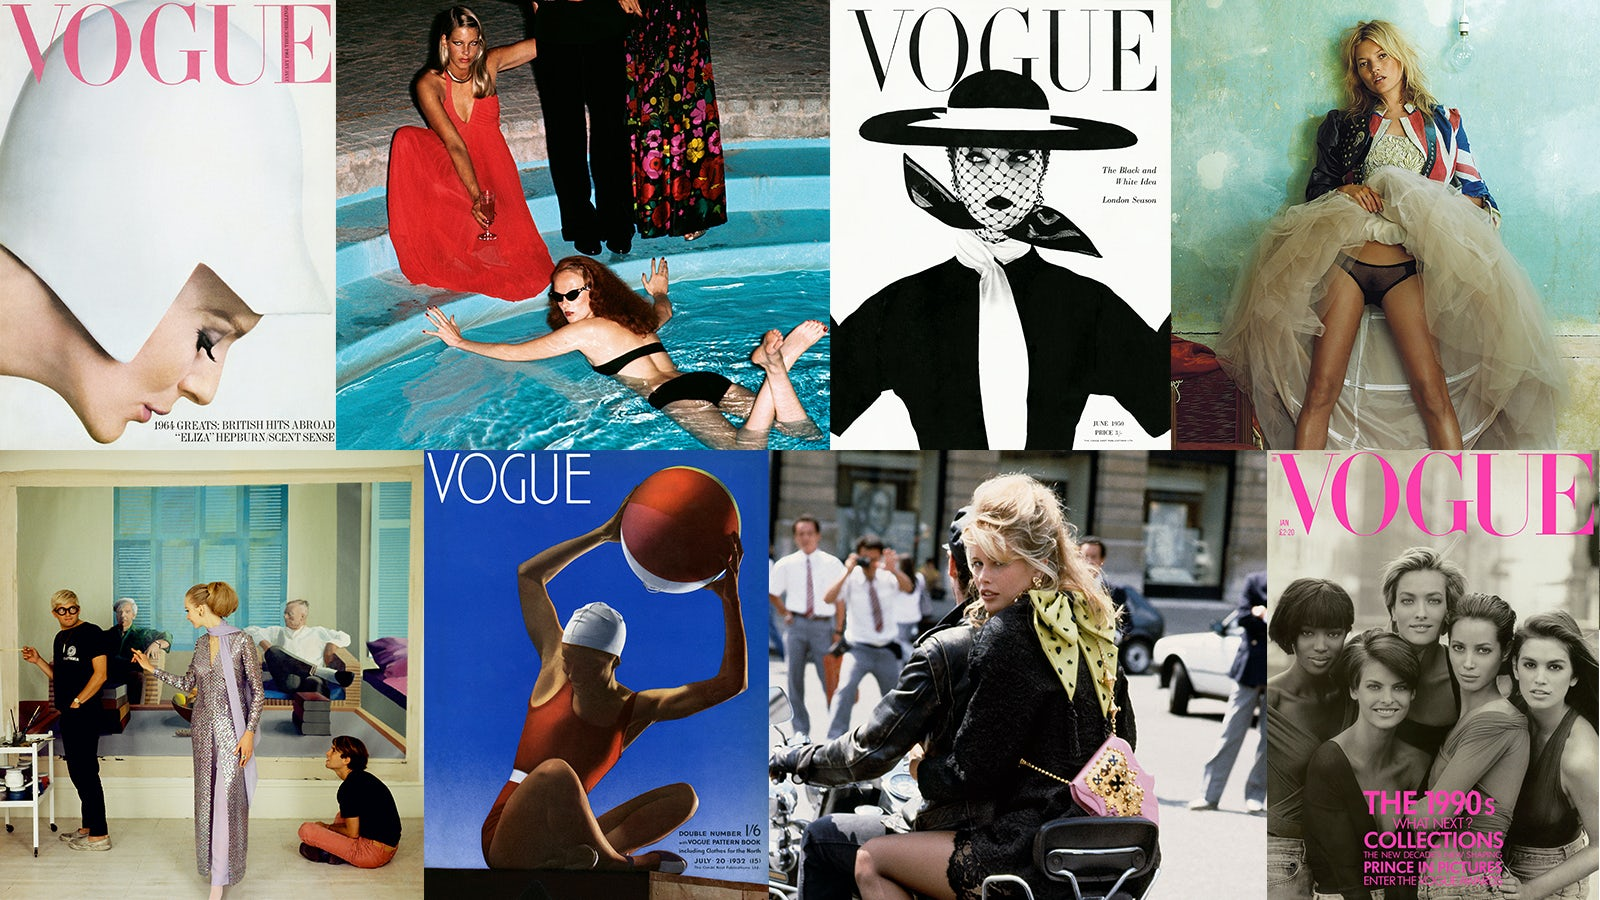 (L-R) Brian Duffy cover; Limelight Nights by Helmut Newton; Irving Penn cover; Kate Moss by Mario Testino ©Mario Testino; David Hockney, Peter Schlesinger and Maudie James by Cecil Beaton; Edward Steichen cover; Claudia Schiffer by Herb Ritts; Peter Lindbergh cover | Source: Courtesy of Condé Nast